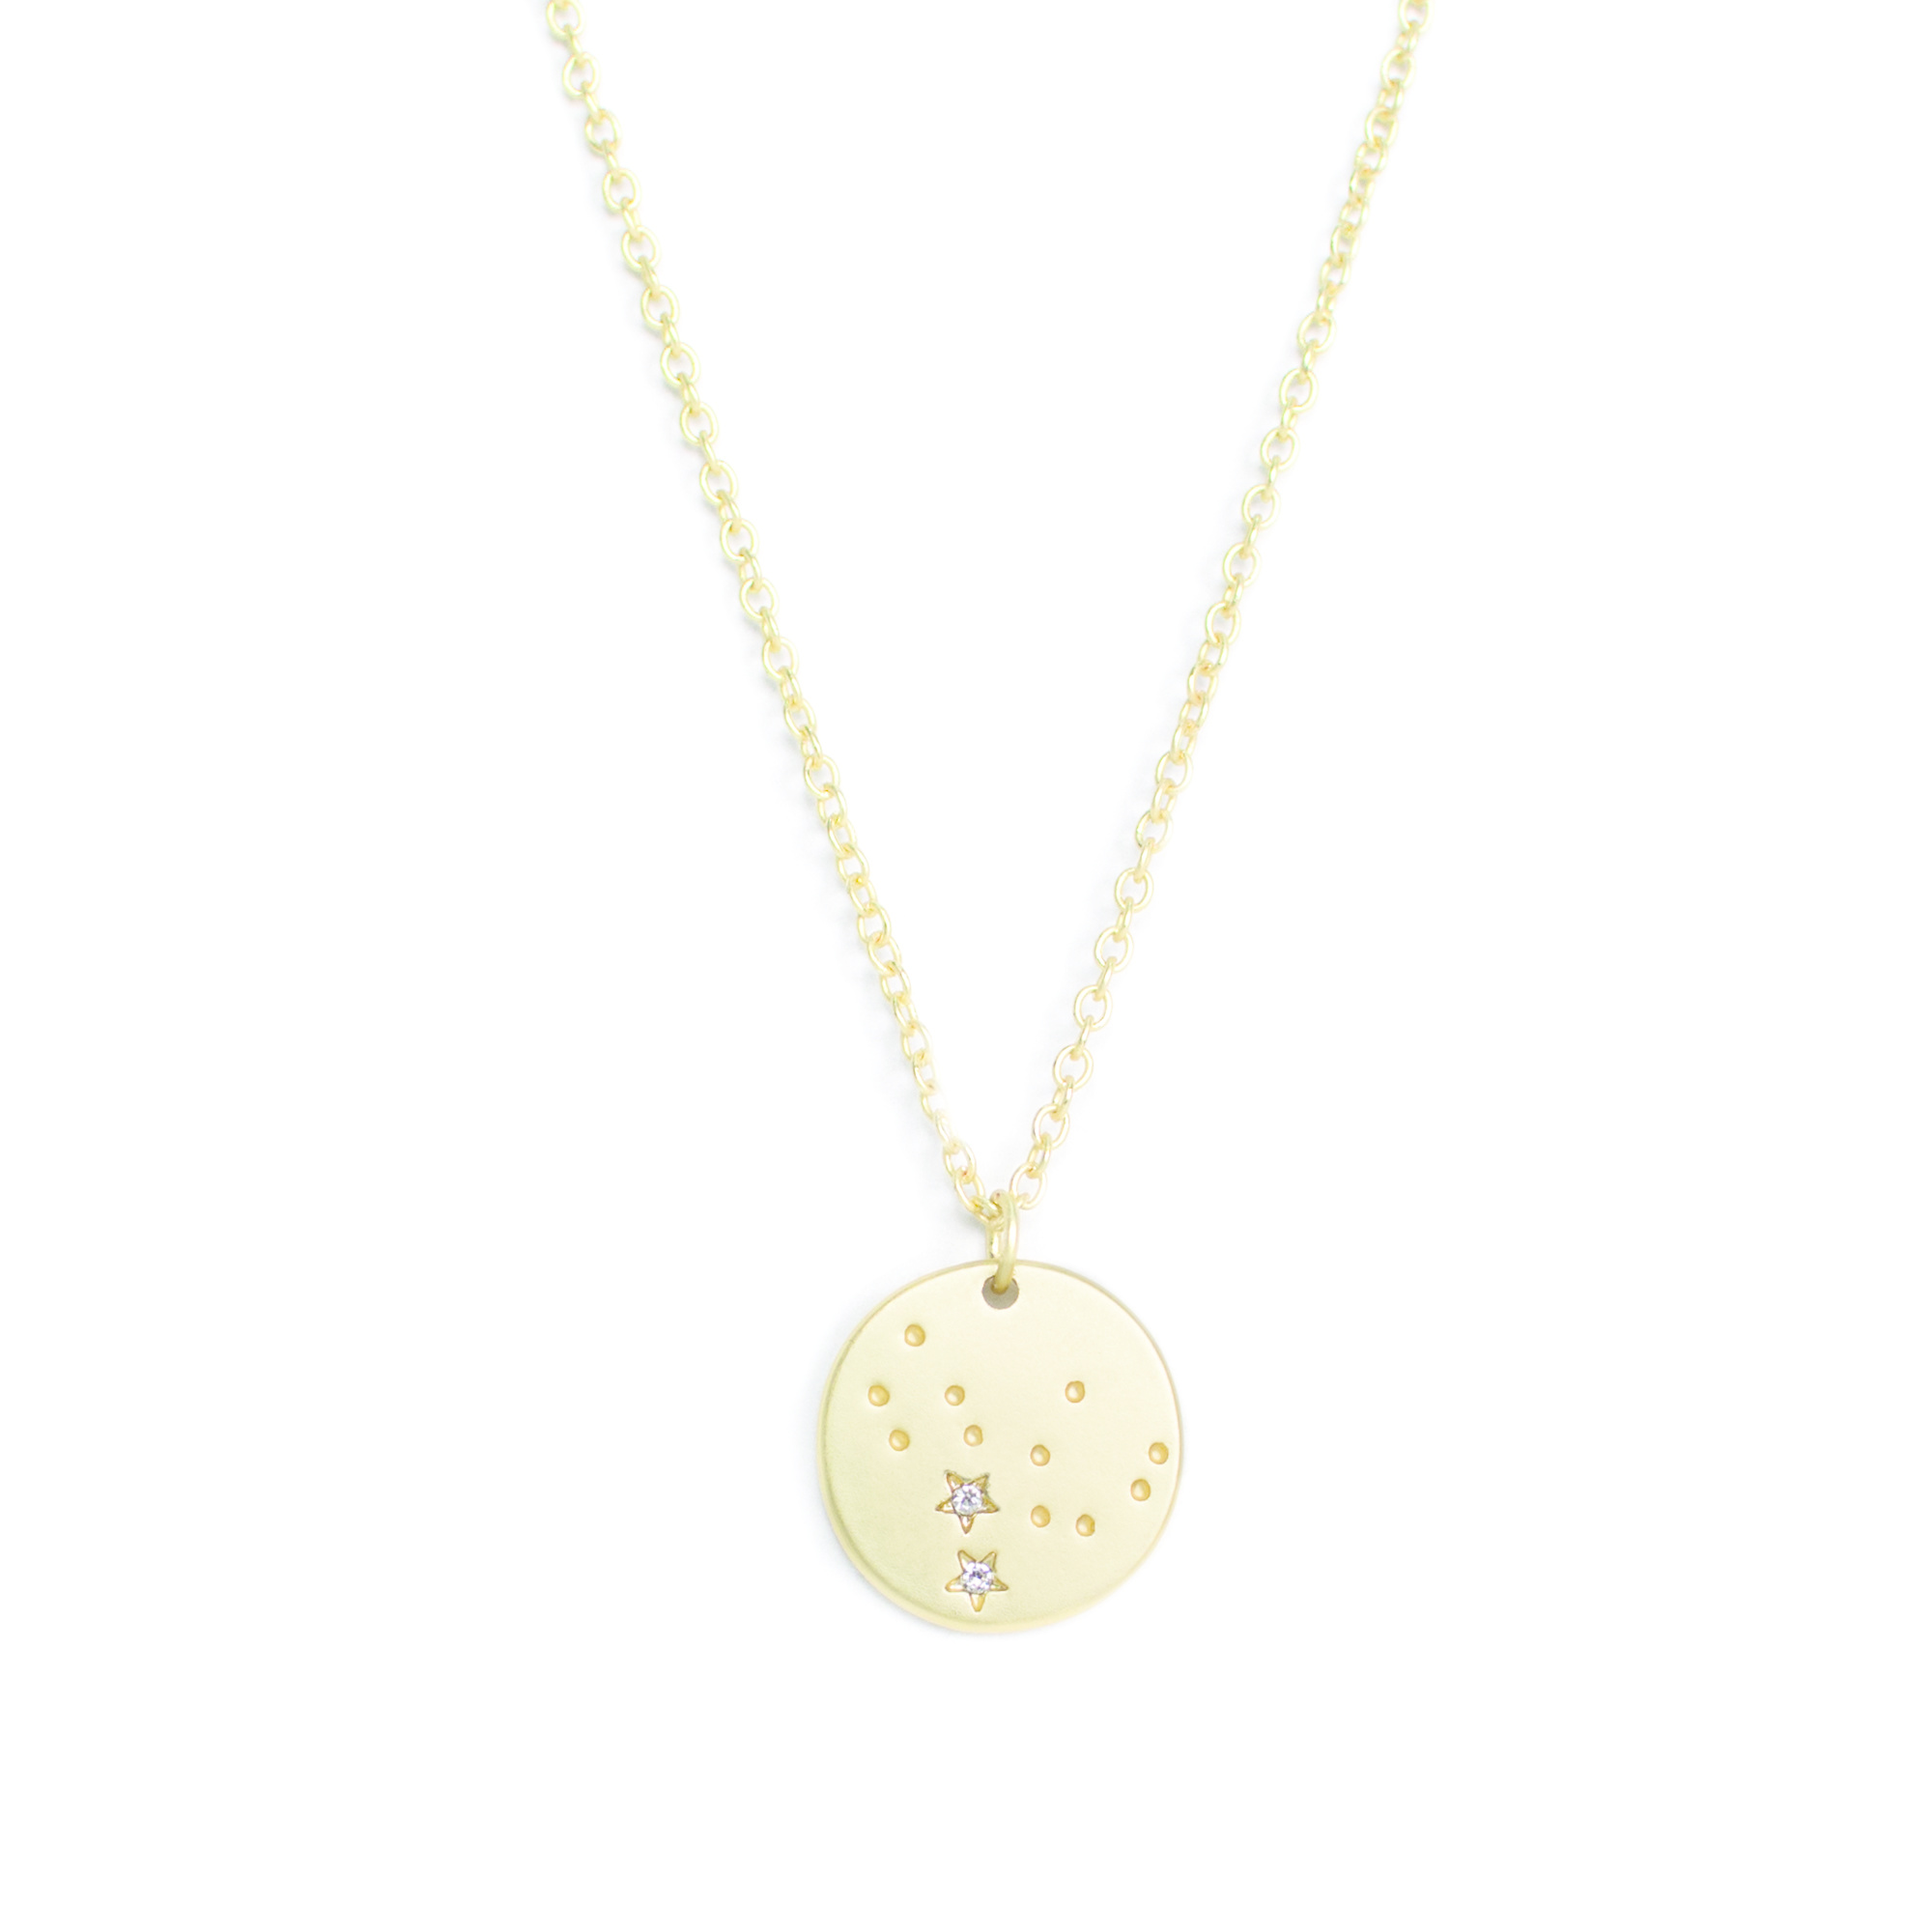 Lucky Feather Zodiac Constellation Necklace